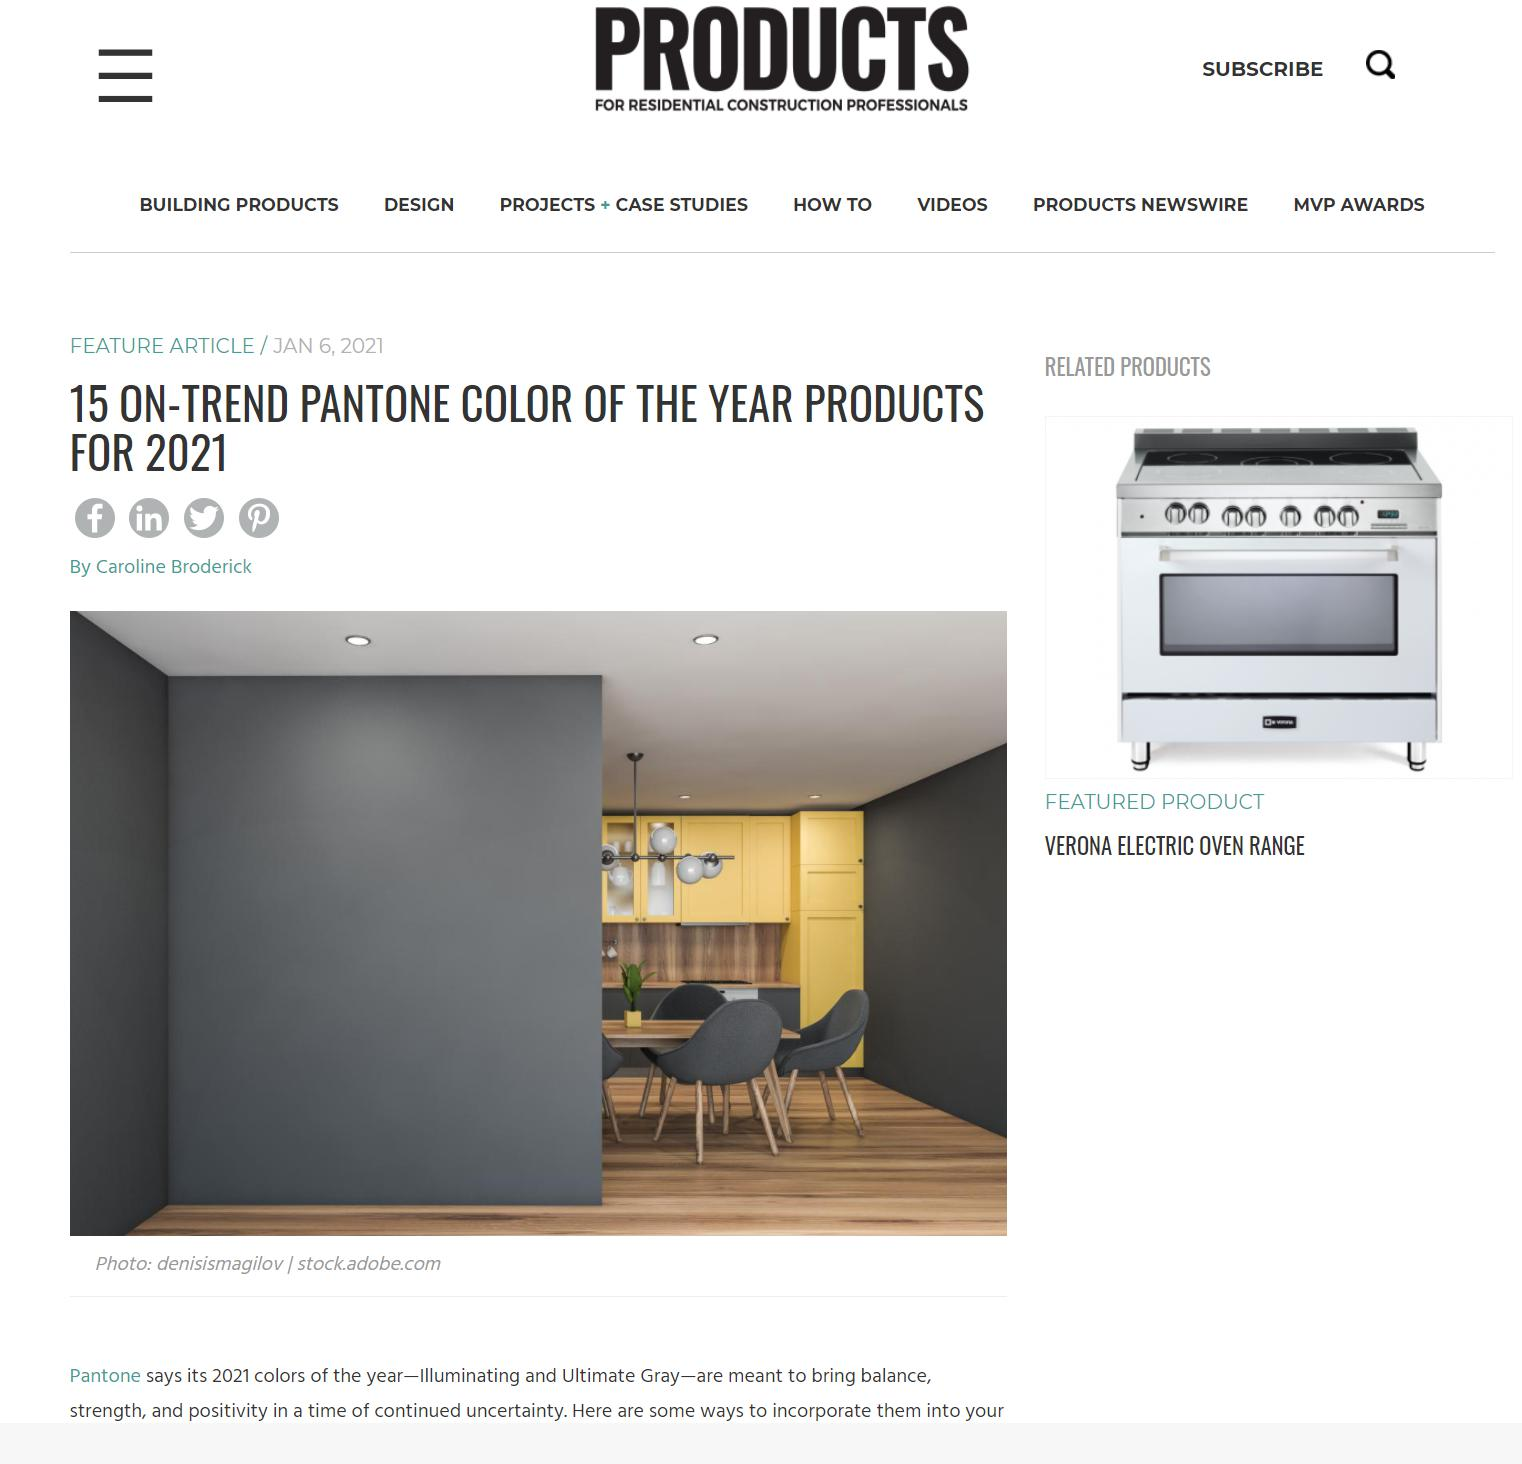 Products Online - January 6, 2021